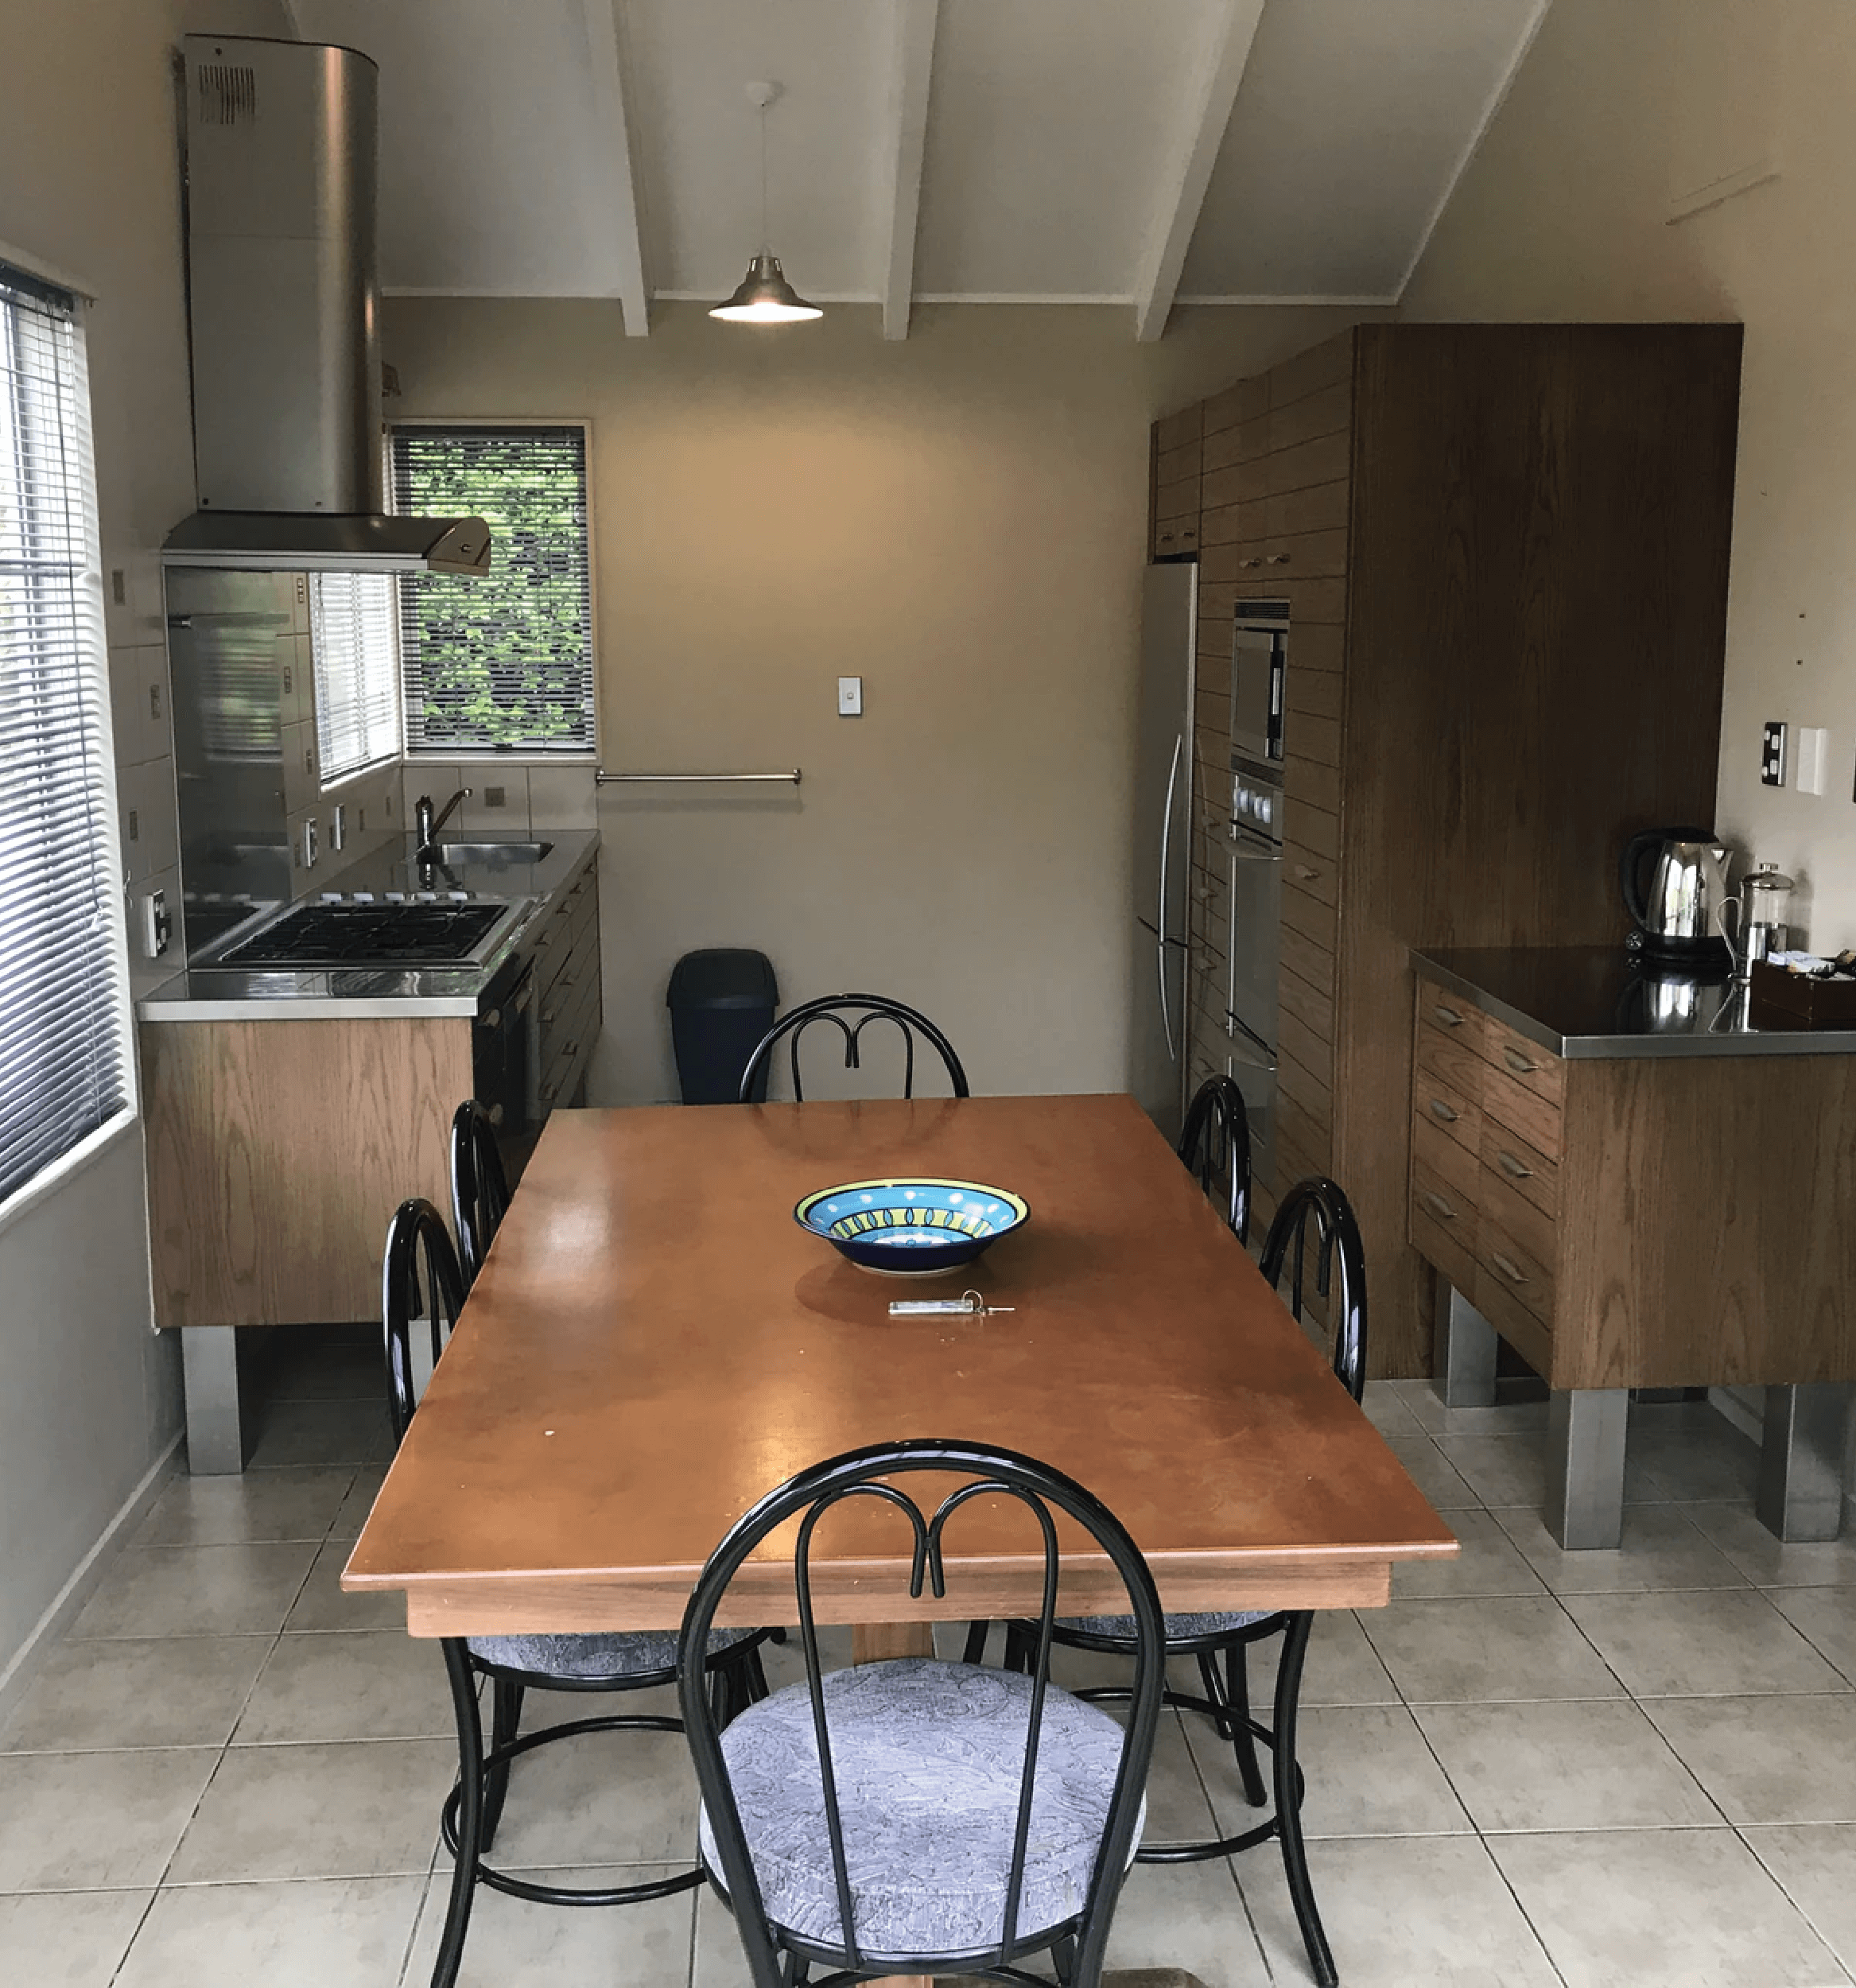 Edgewater Motels Villa kitchen. A modern dark wooden coloured cabinetry with stainless stell benchtop along with a dining table.